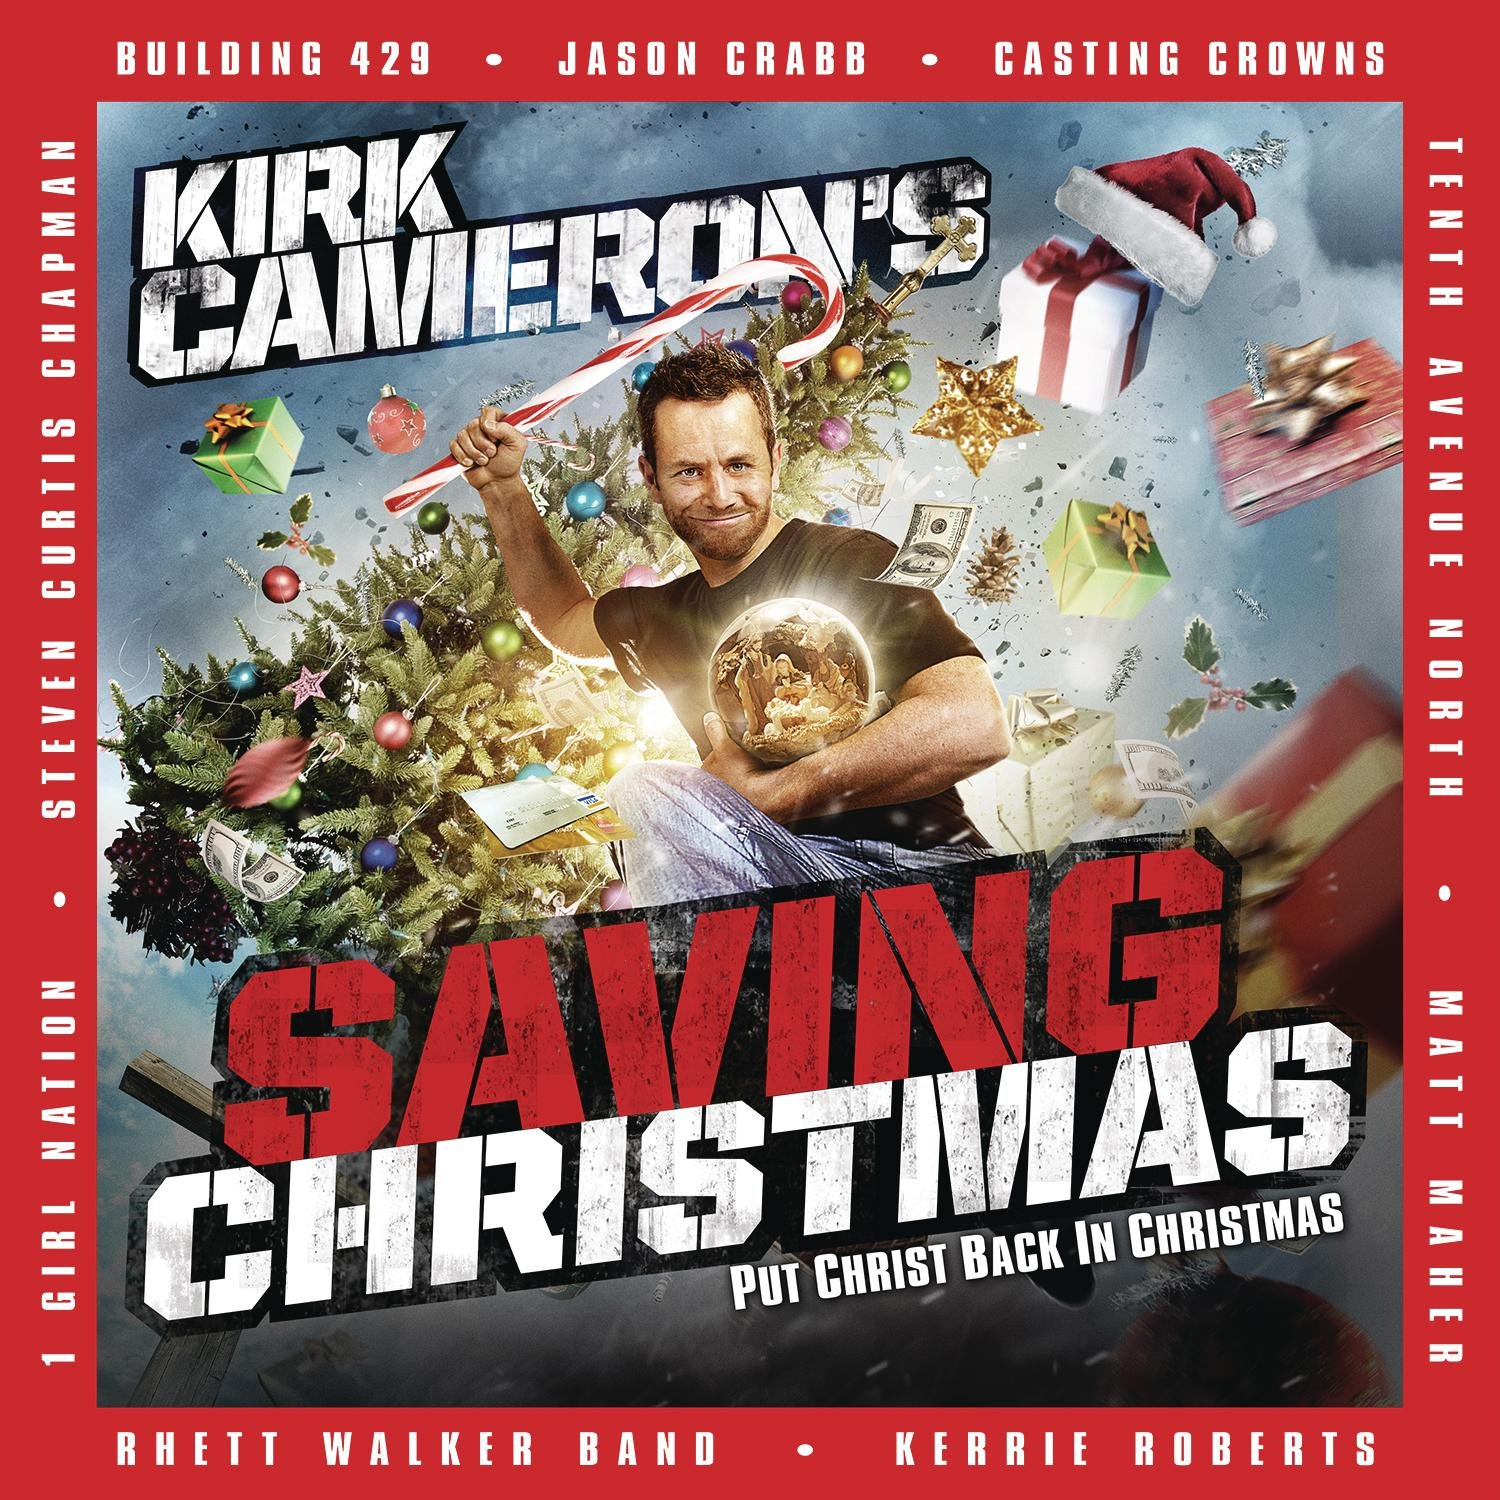 Various - Saving Christmas Soundtrack - Amazon.com Music